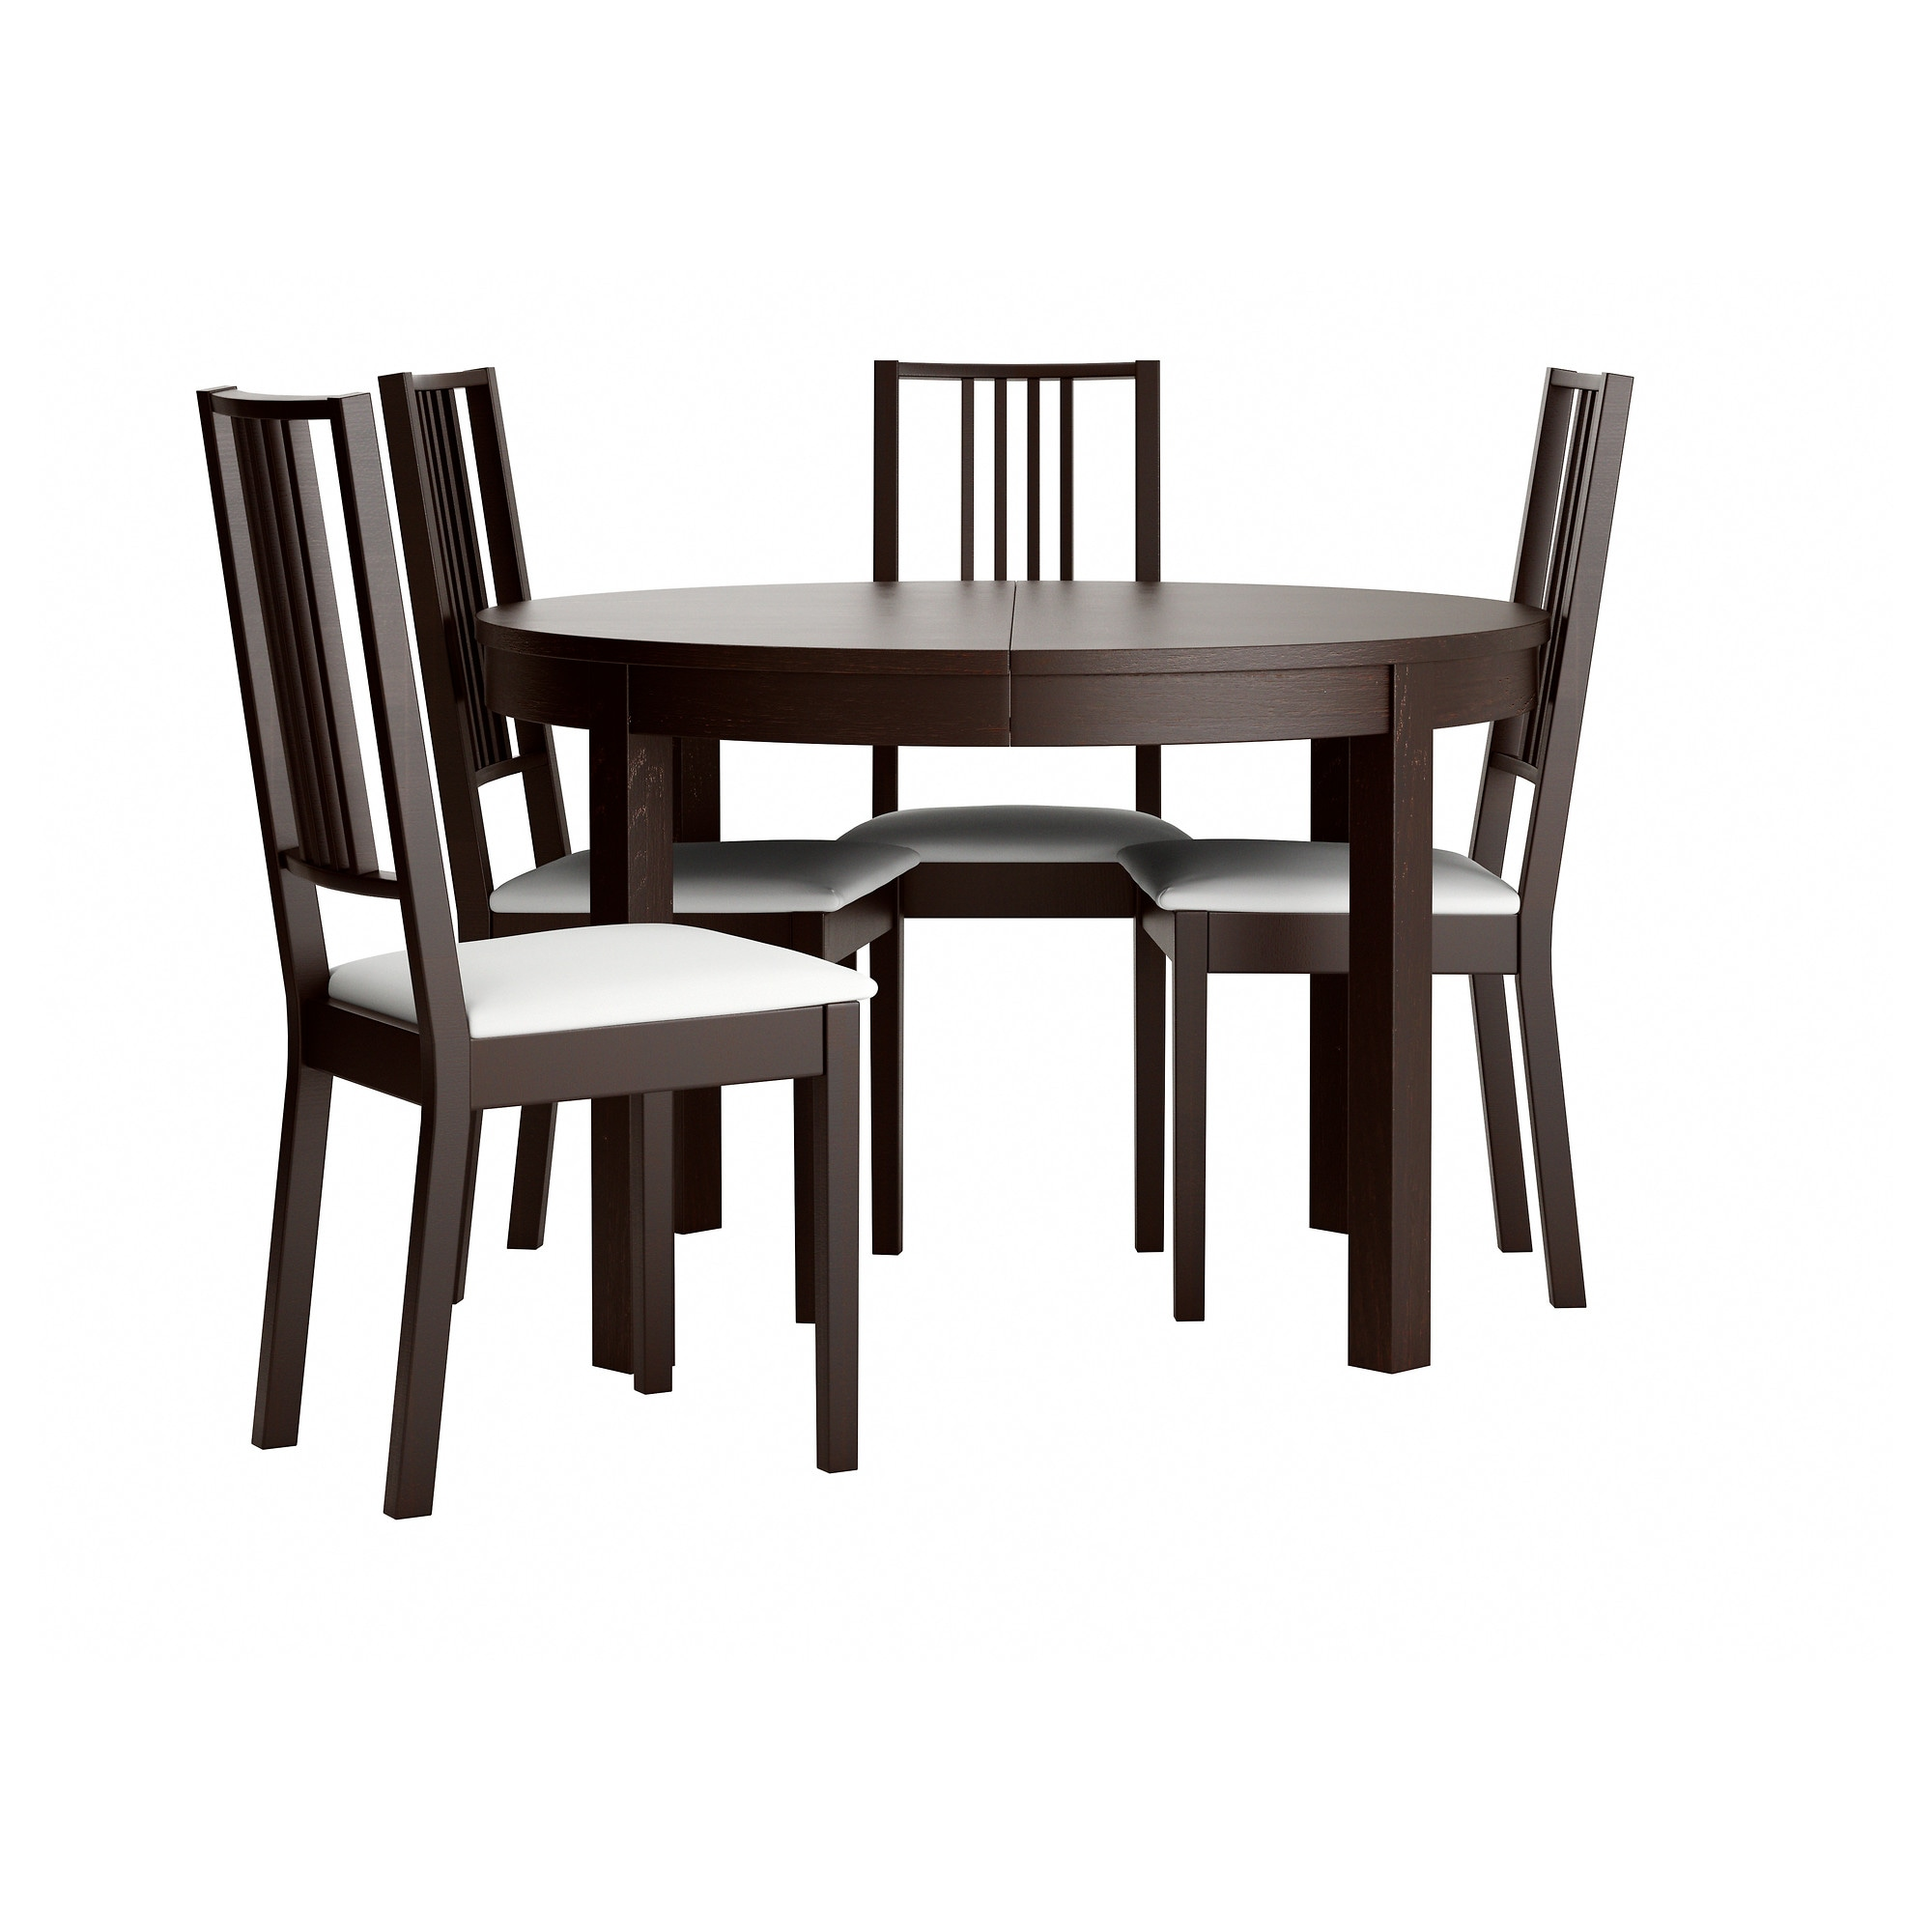 BJURSTA B–RJE Table and 4 chairs IKEA